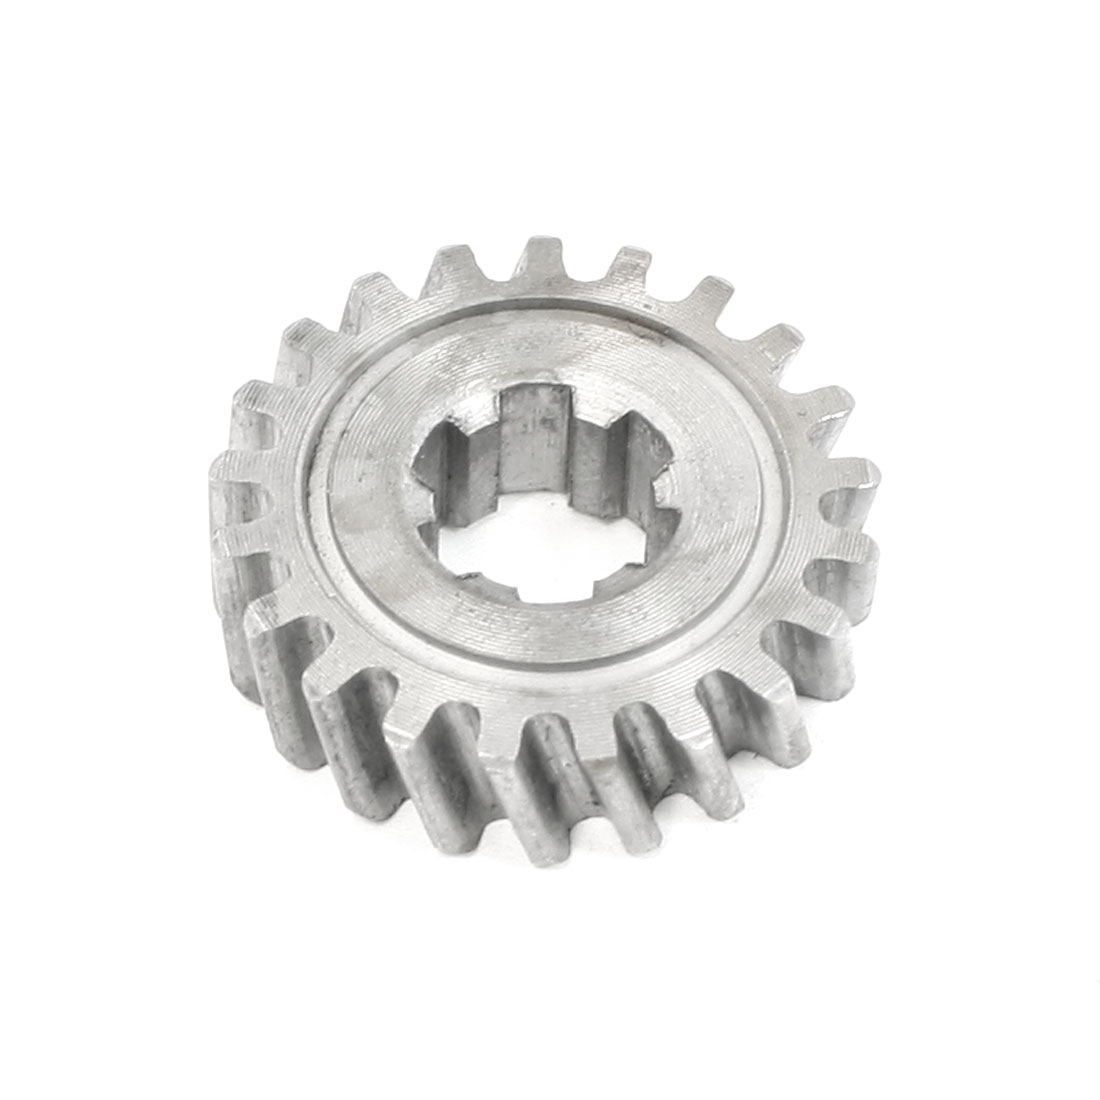 Replacement Part Helical Gear 21 Teeth for Bosch 20 Electric Impact Drill